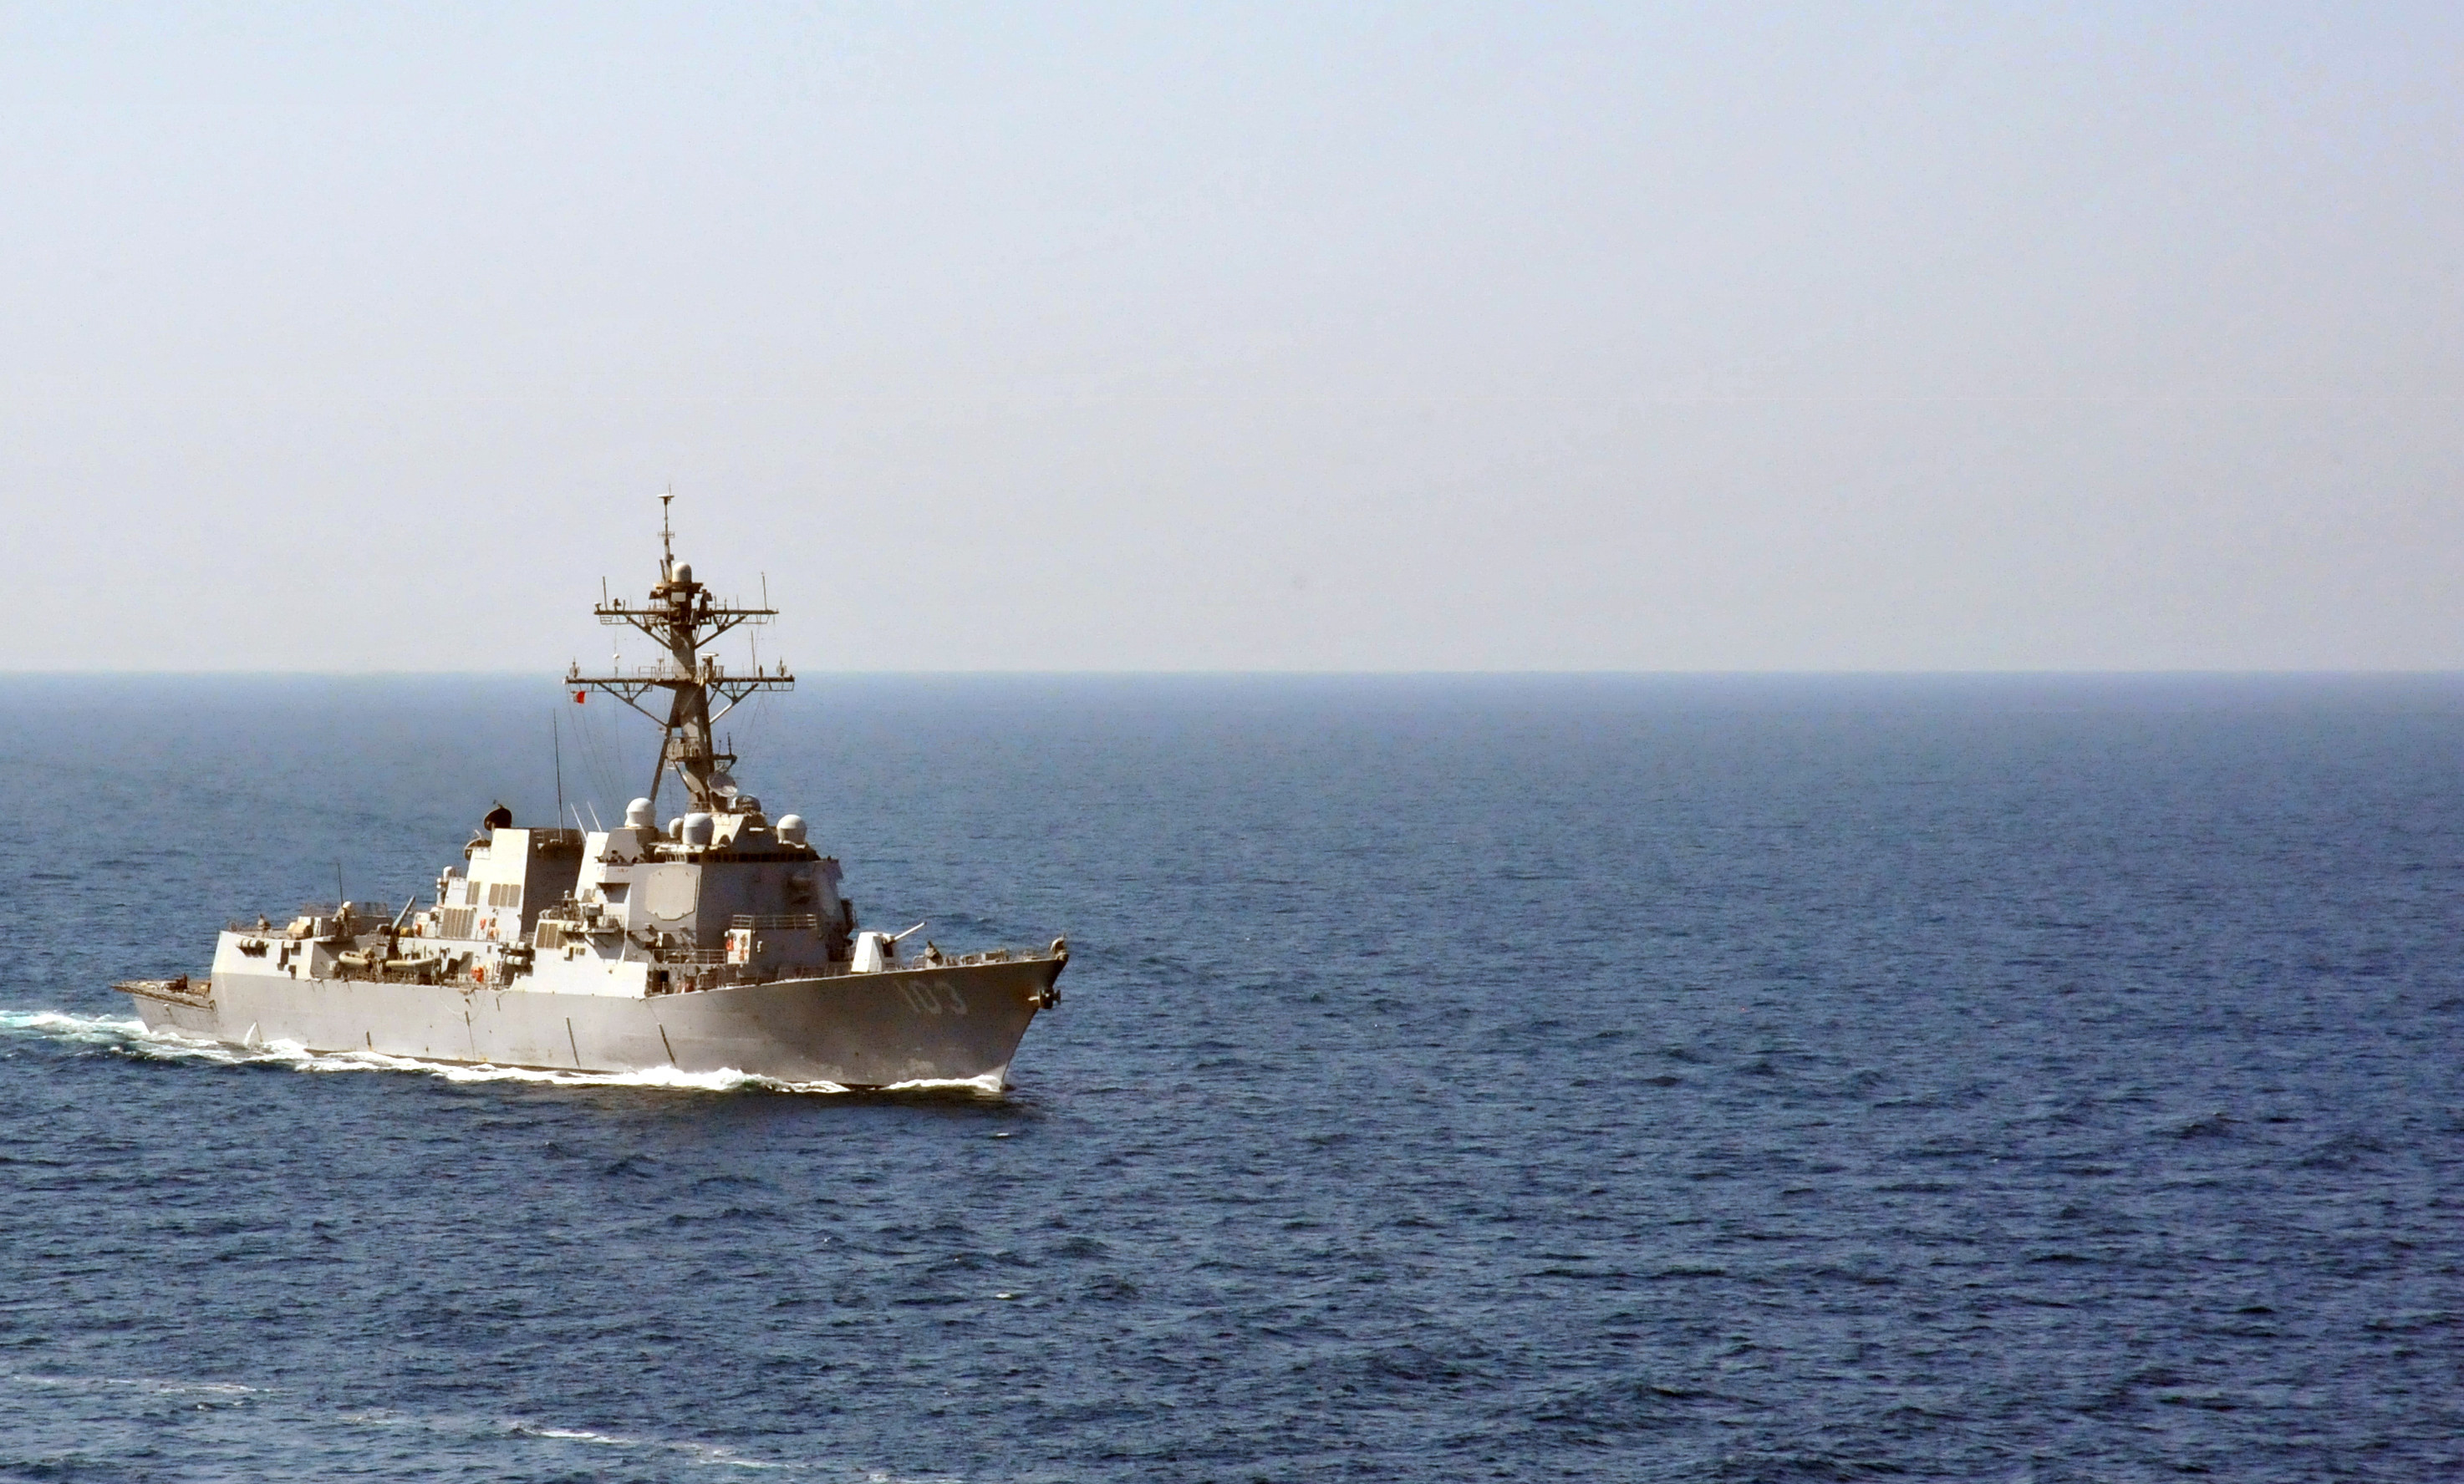 USS Truxton (DDG-103) on July 9, 2014. US Navy Photo